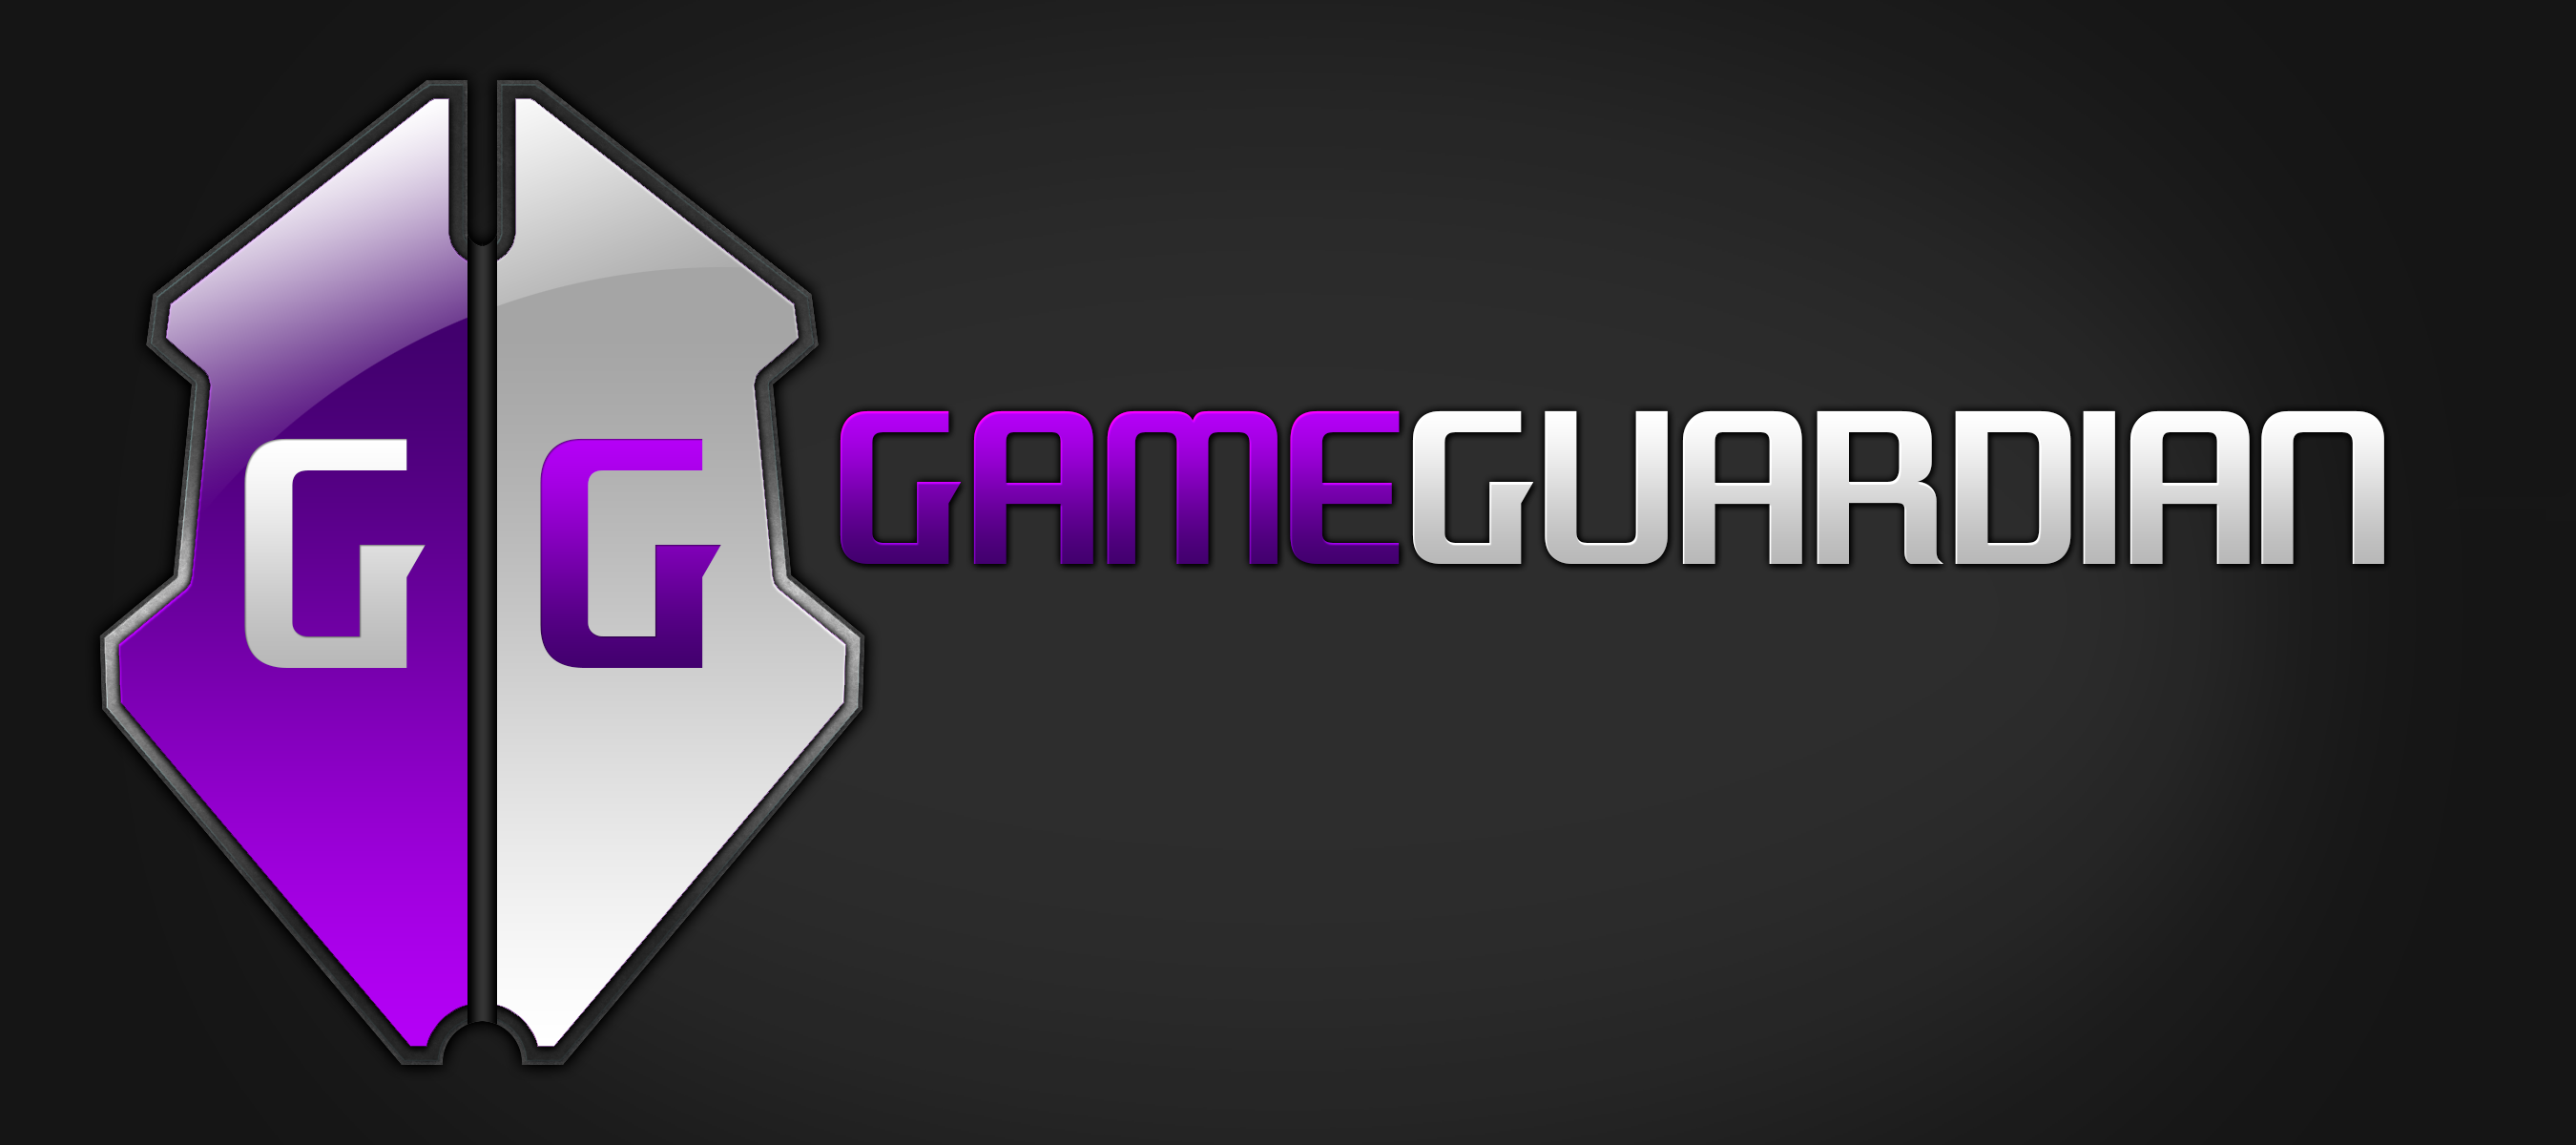 Game guardian apk download: gguardian for android latest ver.